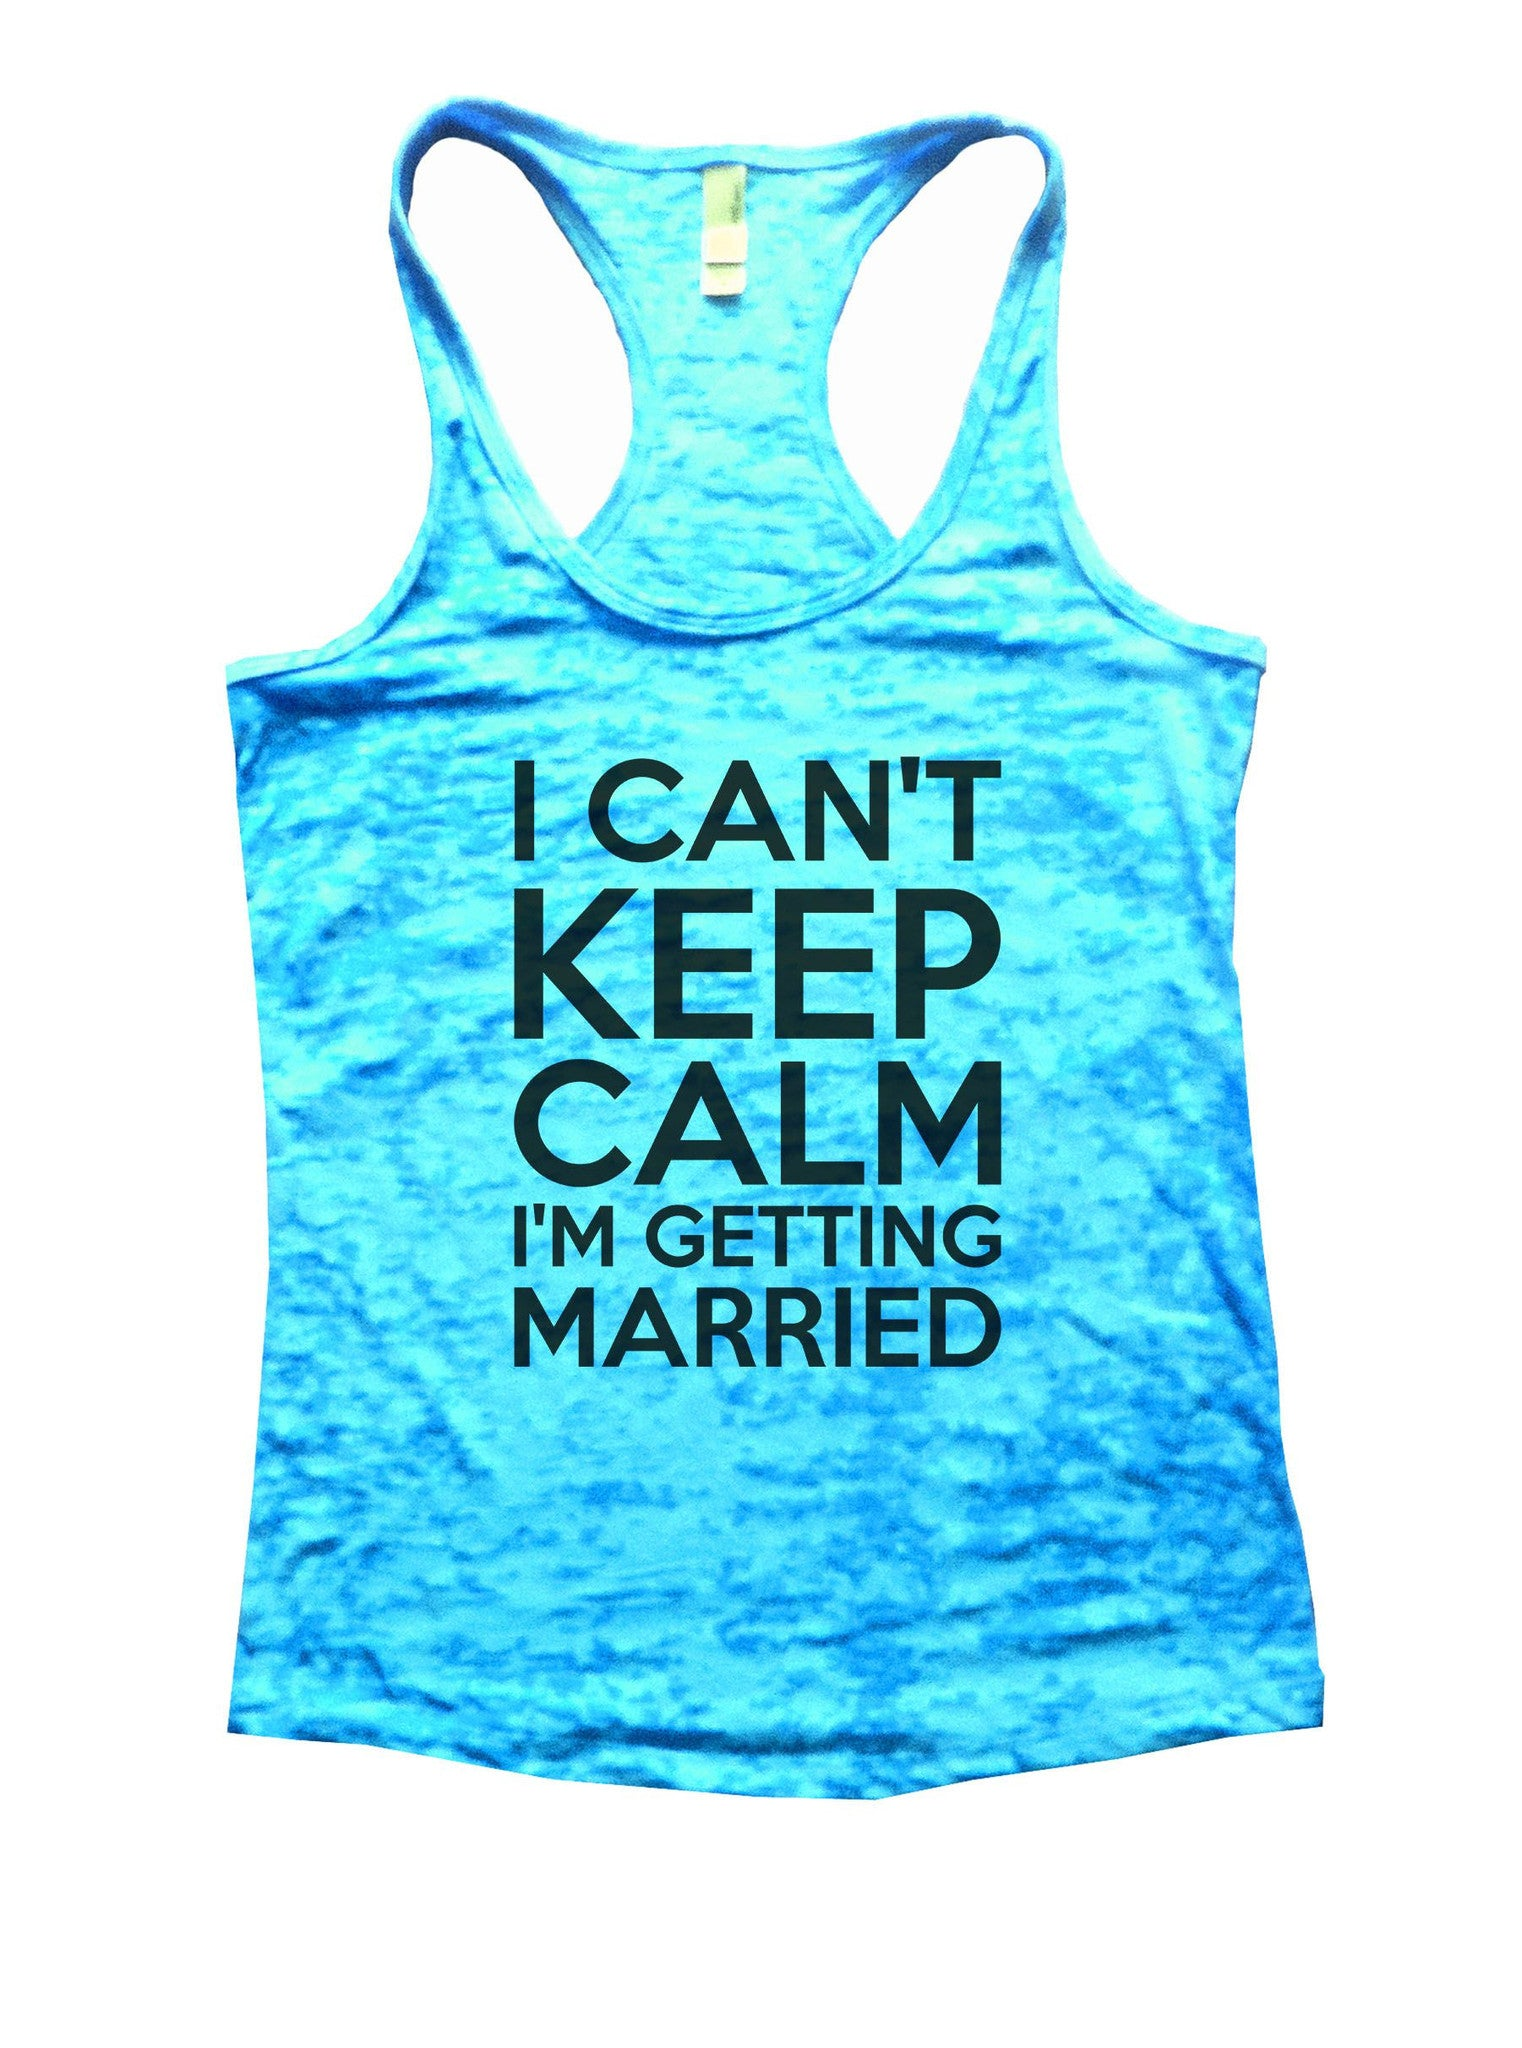 I Can't Keep Calm I'm Getting Married Burnout Tank Top By BurnoutTankTops.com - 887 - Funny Shirts Tank Tops Burnouts and Triblends  - 4